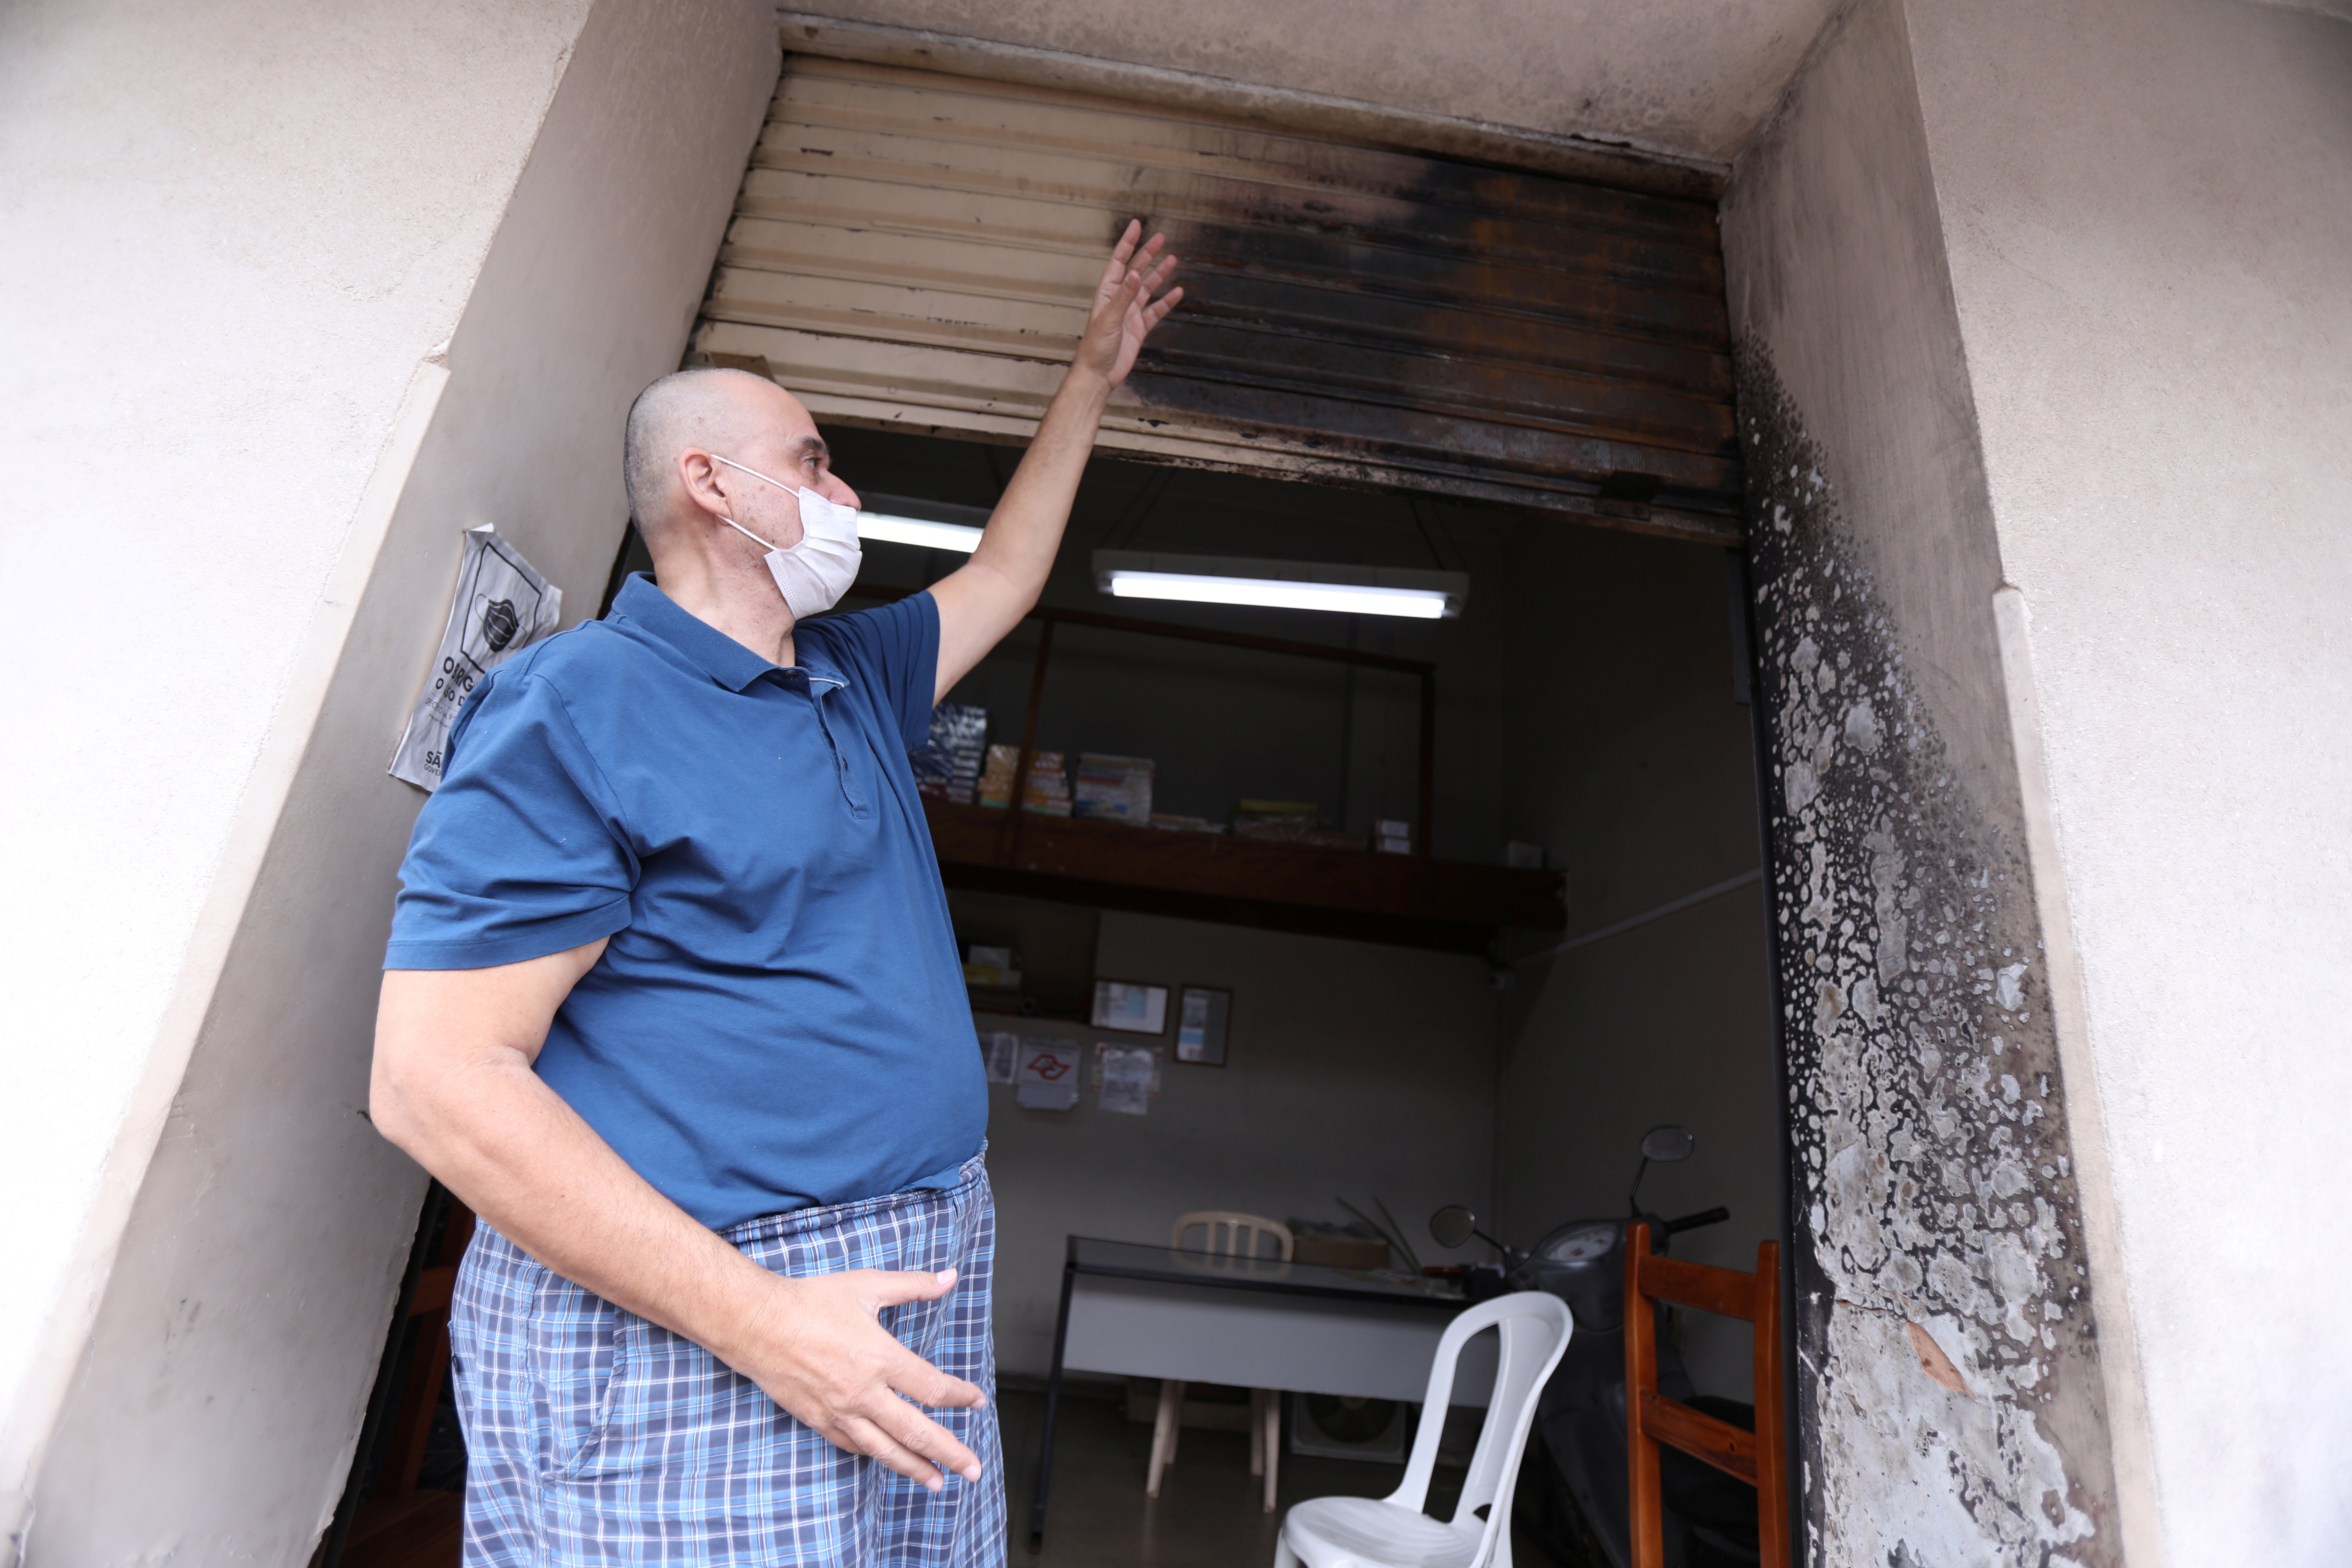 Jose Antonio Arantes, a local newspaper editor and radio host, who had his house set on fire by a supporter of Brazil's President Jair Bolsonaro, gestures in front of his office amid the coronavirus disease (COVID-19) pandemic in Olimpia, Sao Paulo state, Brazil, June 9, 2021. REUTERS/Leonardo Benassatto